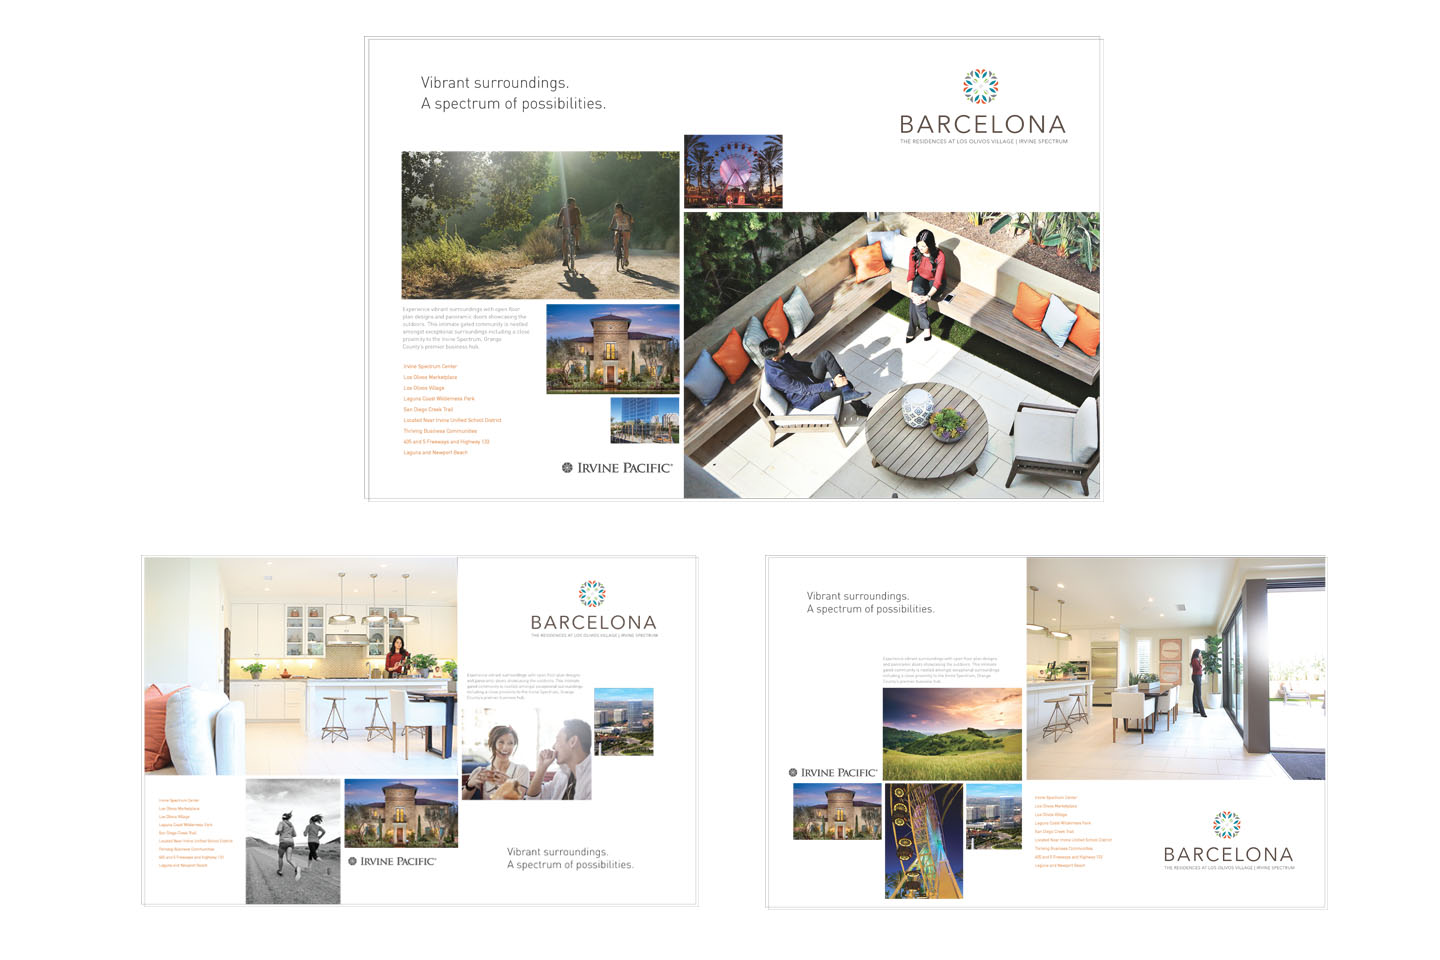 Residential development brand logo and collateral campaign